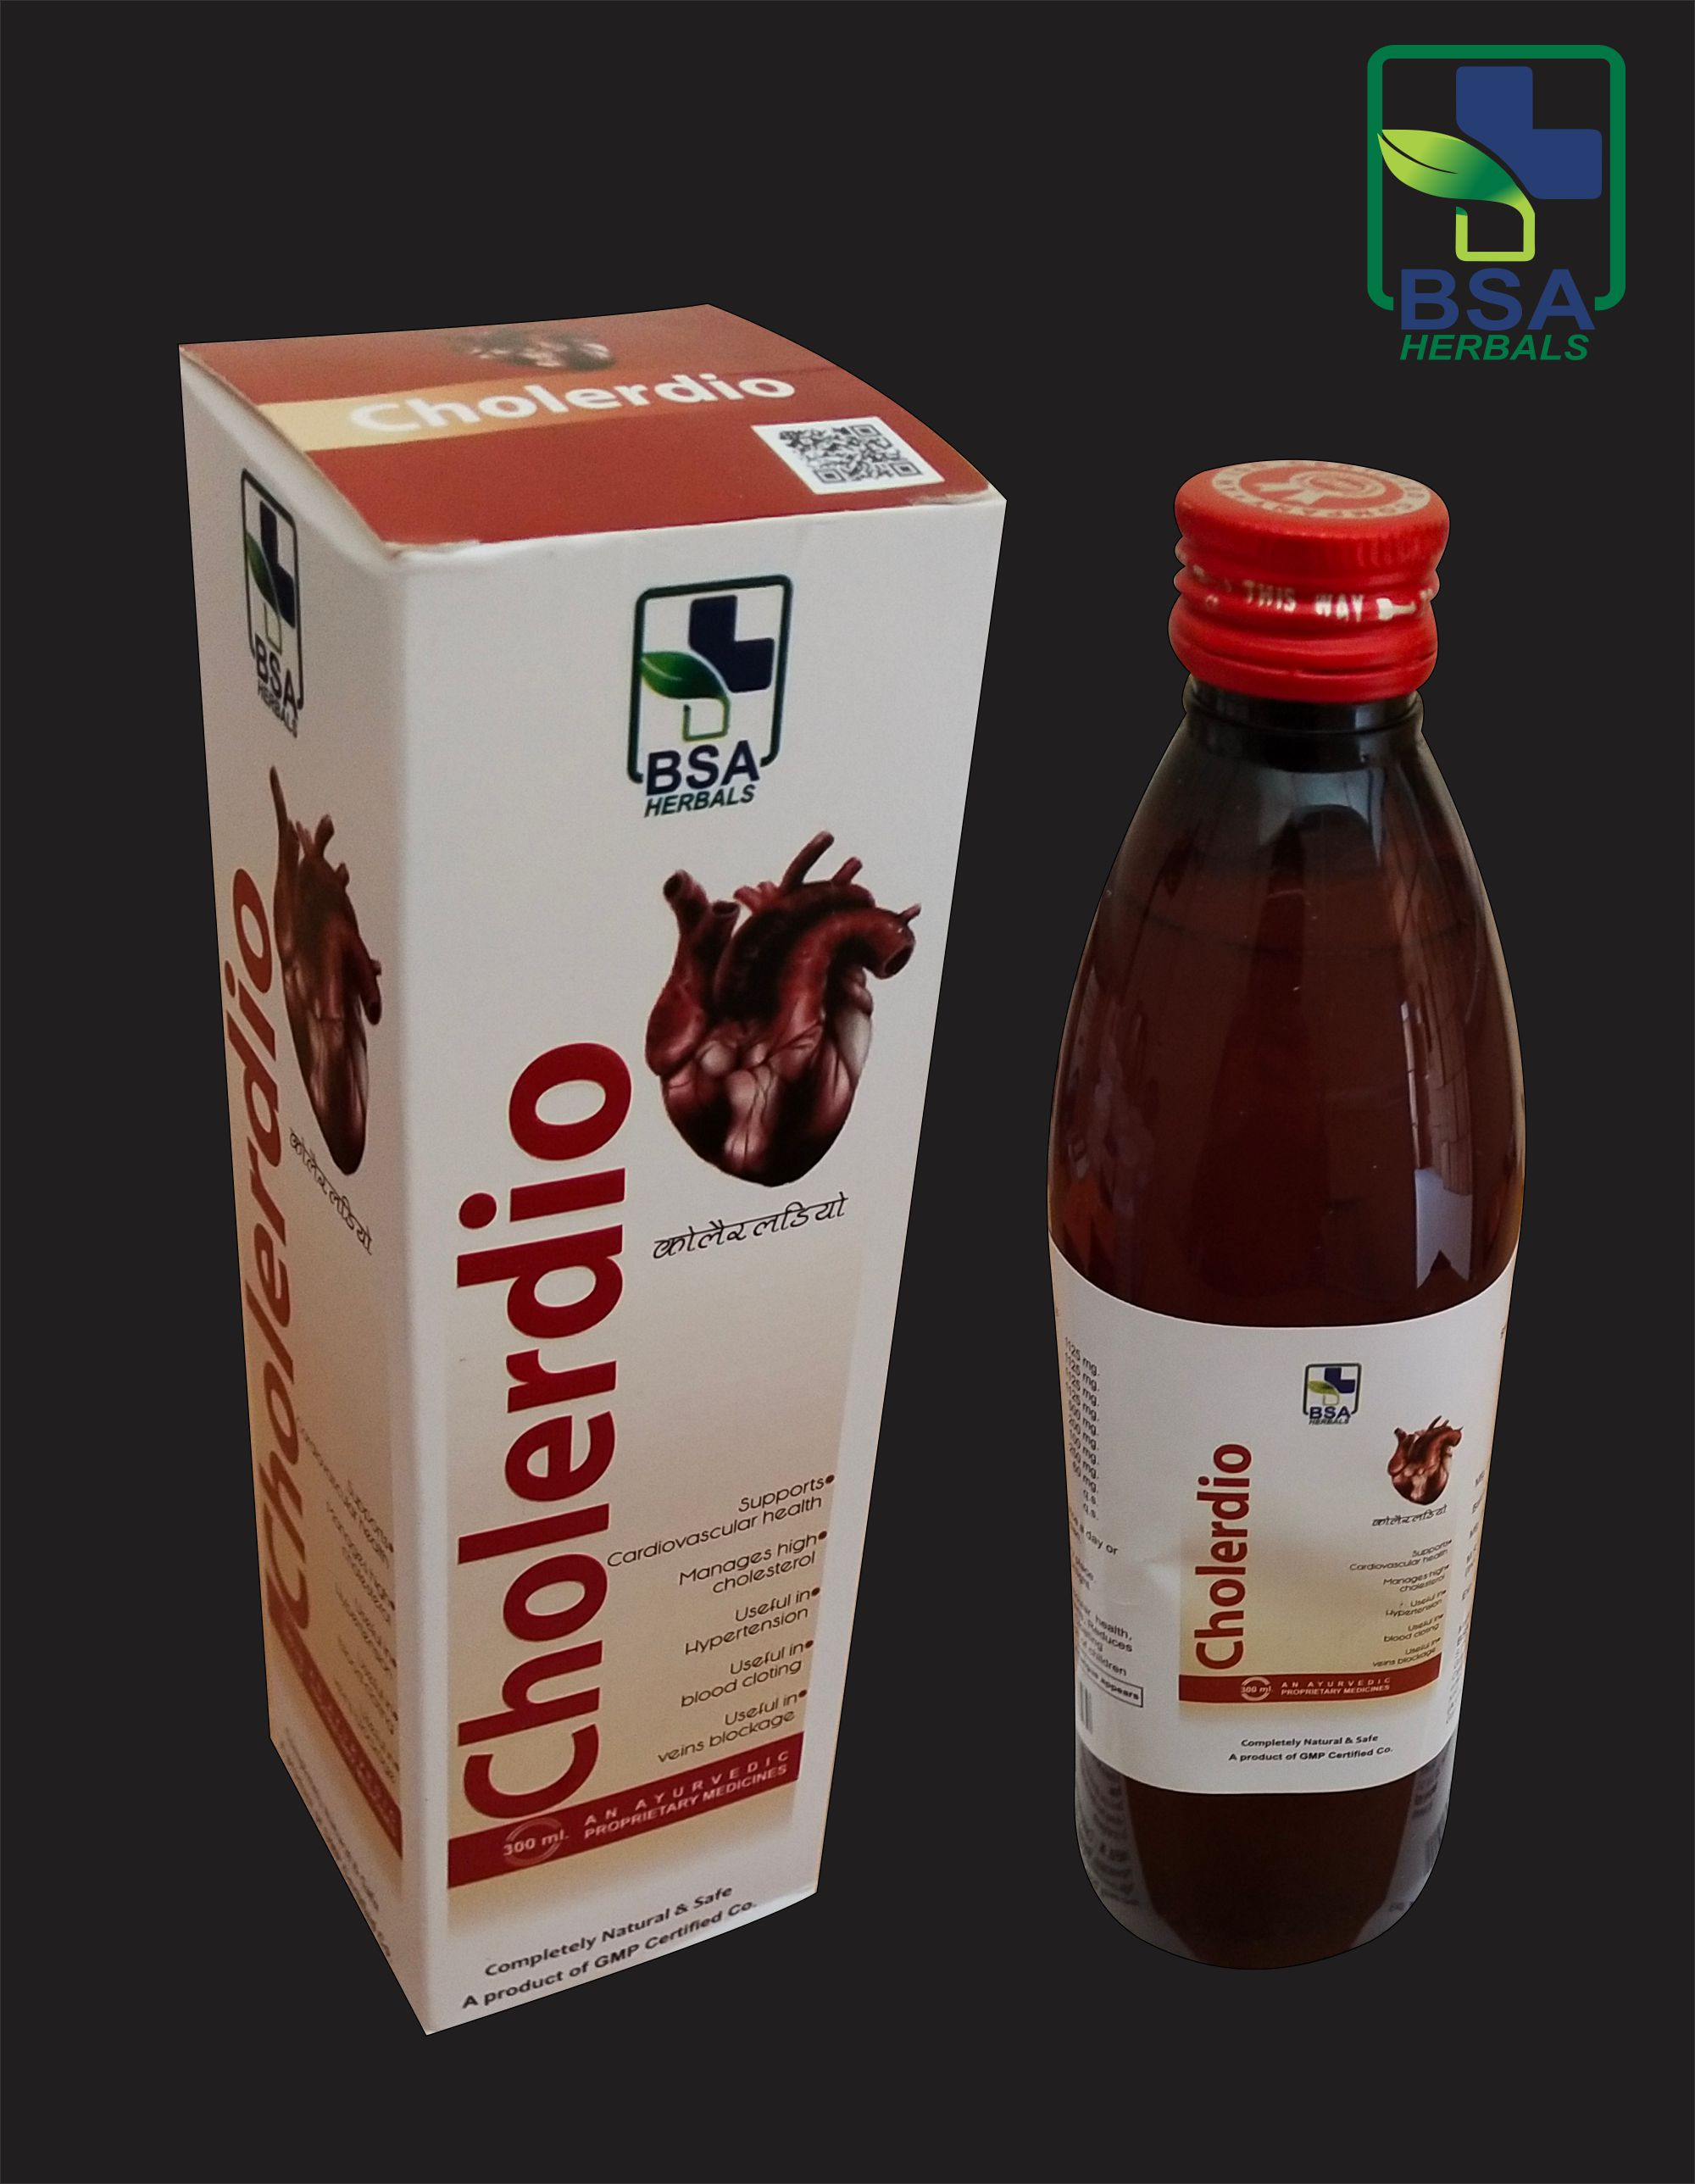 Herbal cholesterol reduction syrup